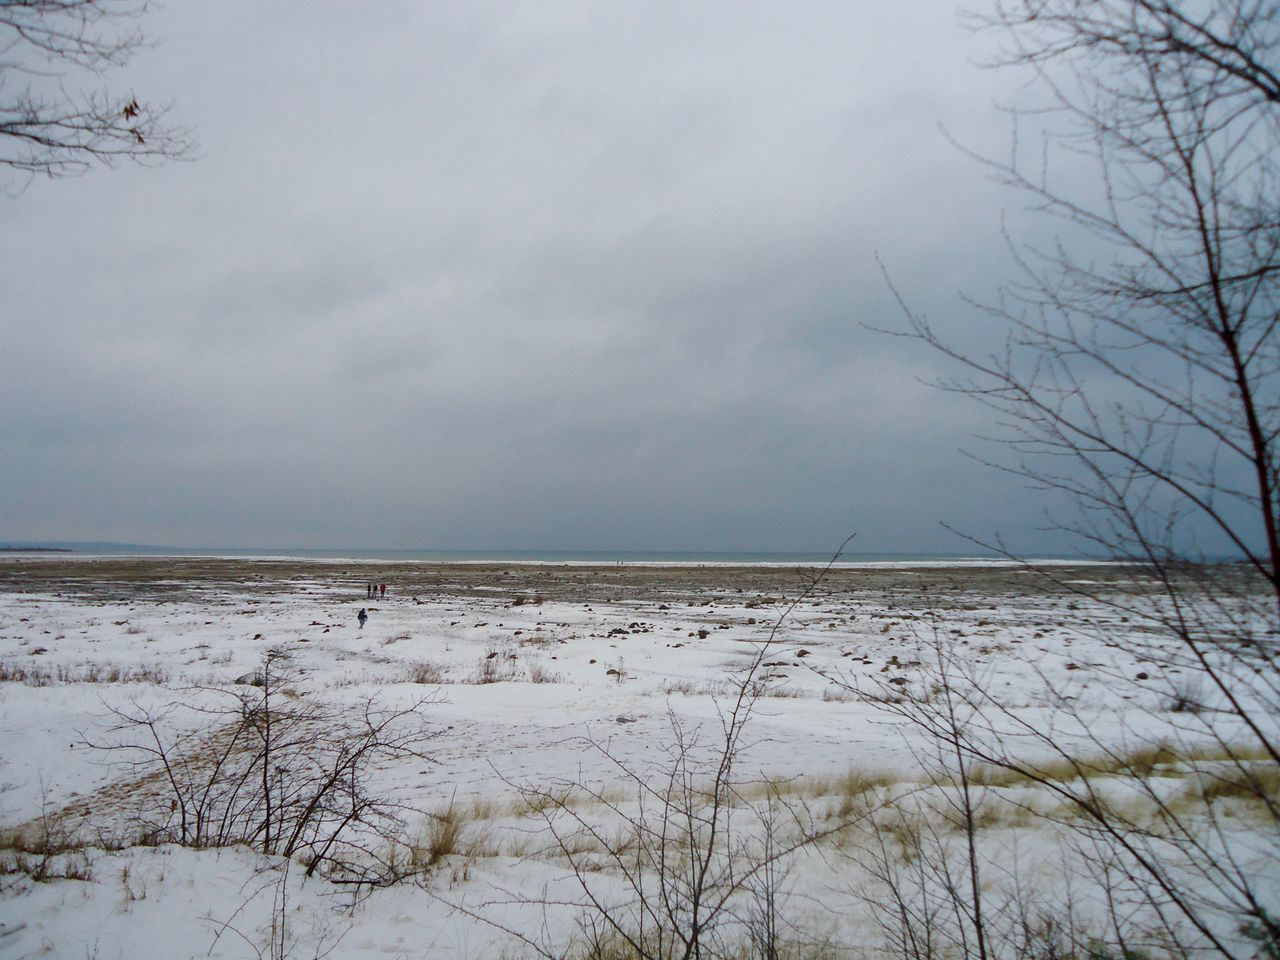 Scenic View Of Snow Covered Shore Against Sky